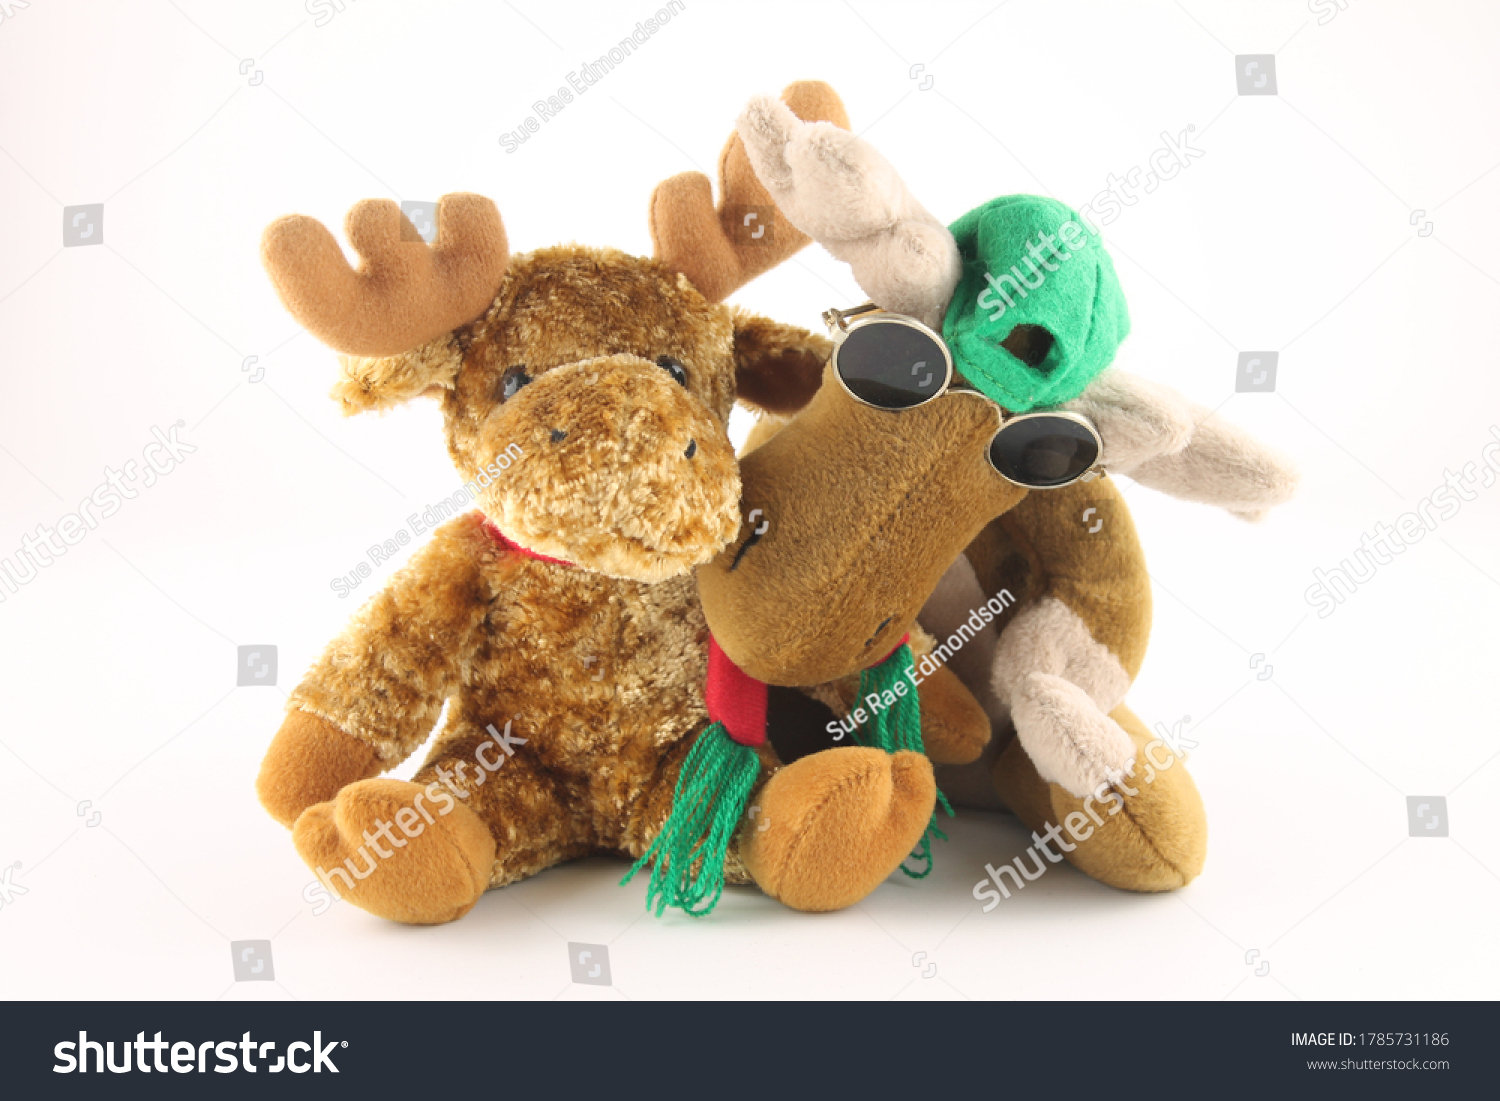 stock-photo-two-soft-toy-moose-one-weari